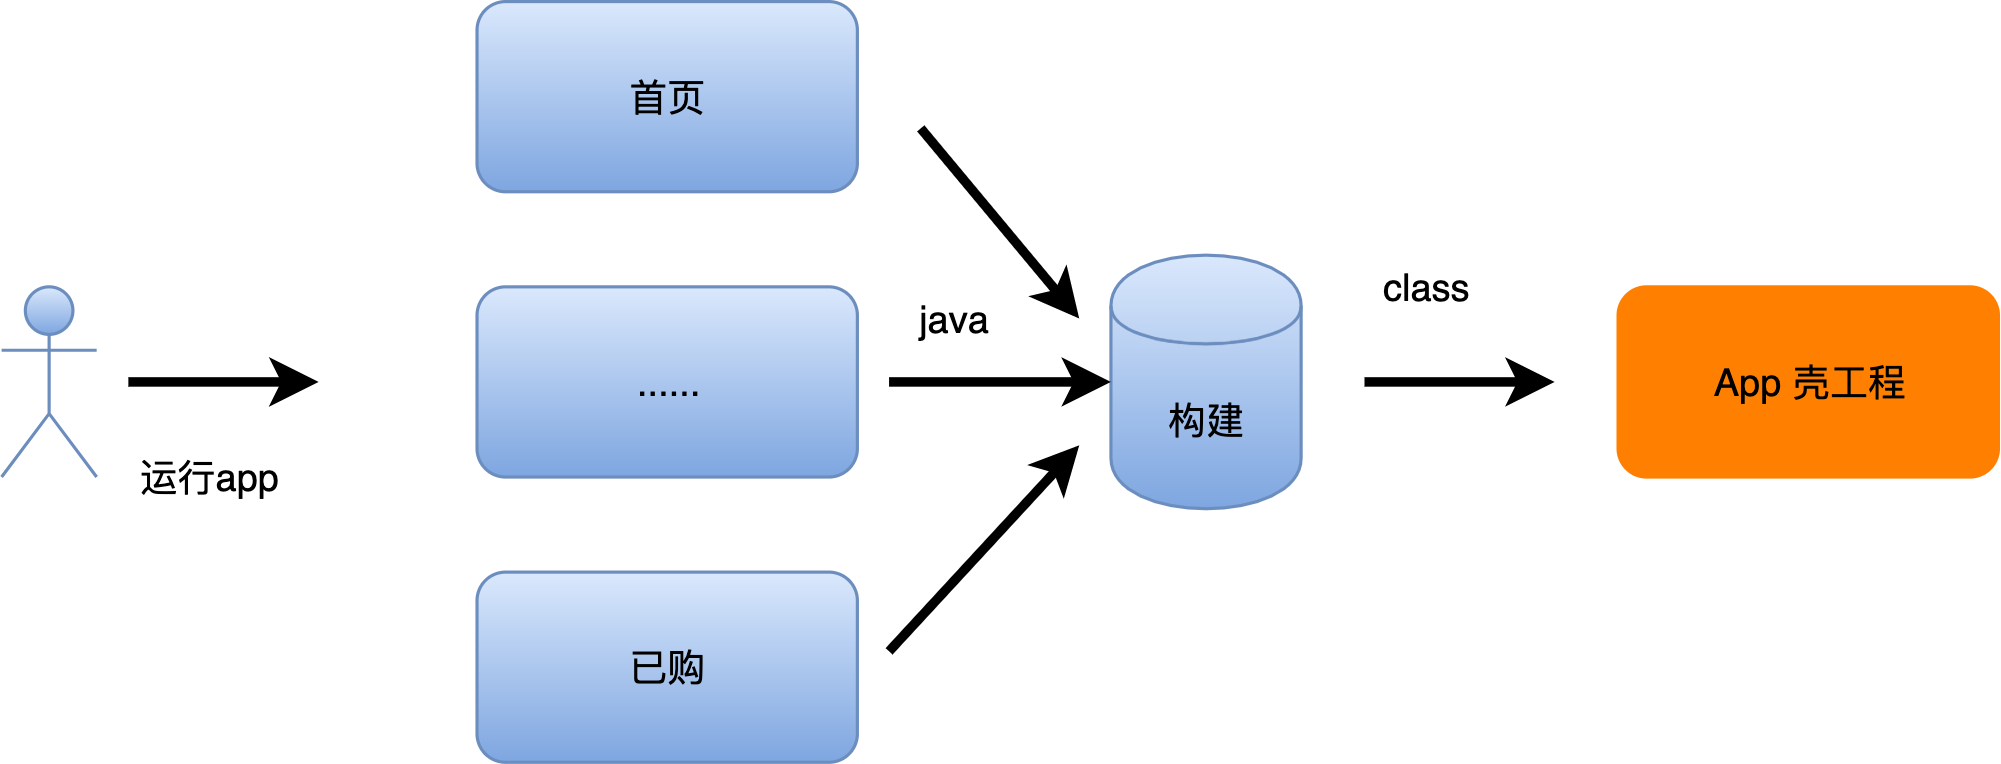 Untitled Diagram (33).png